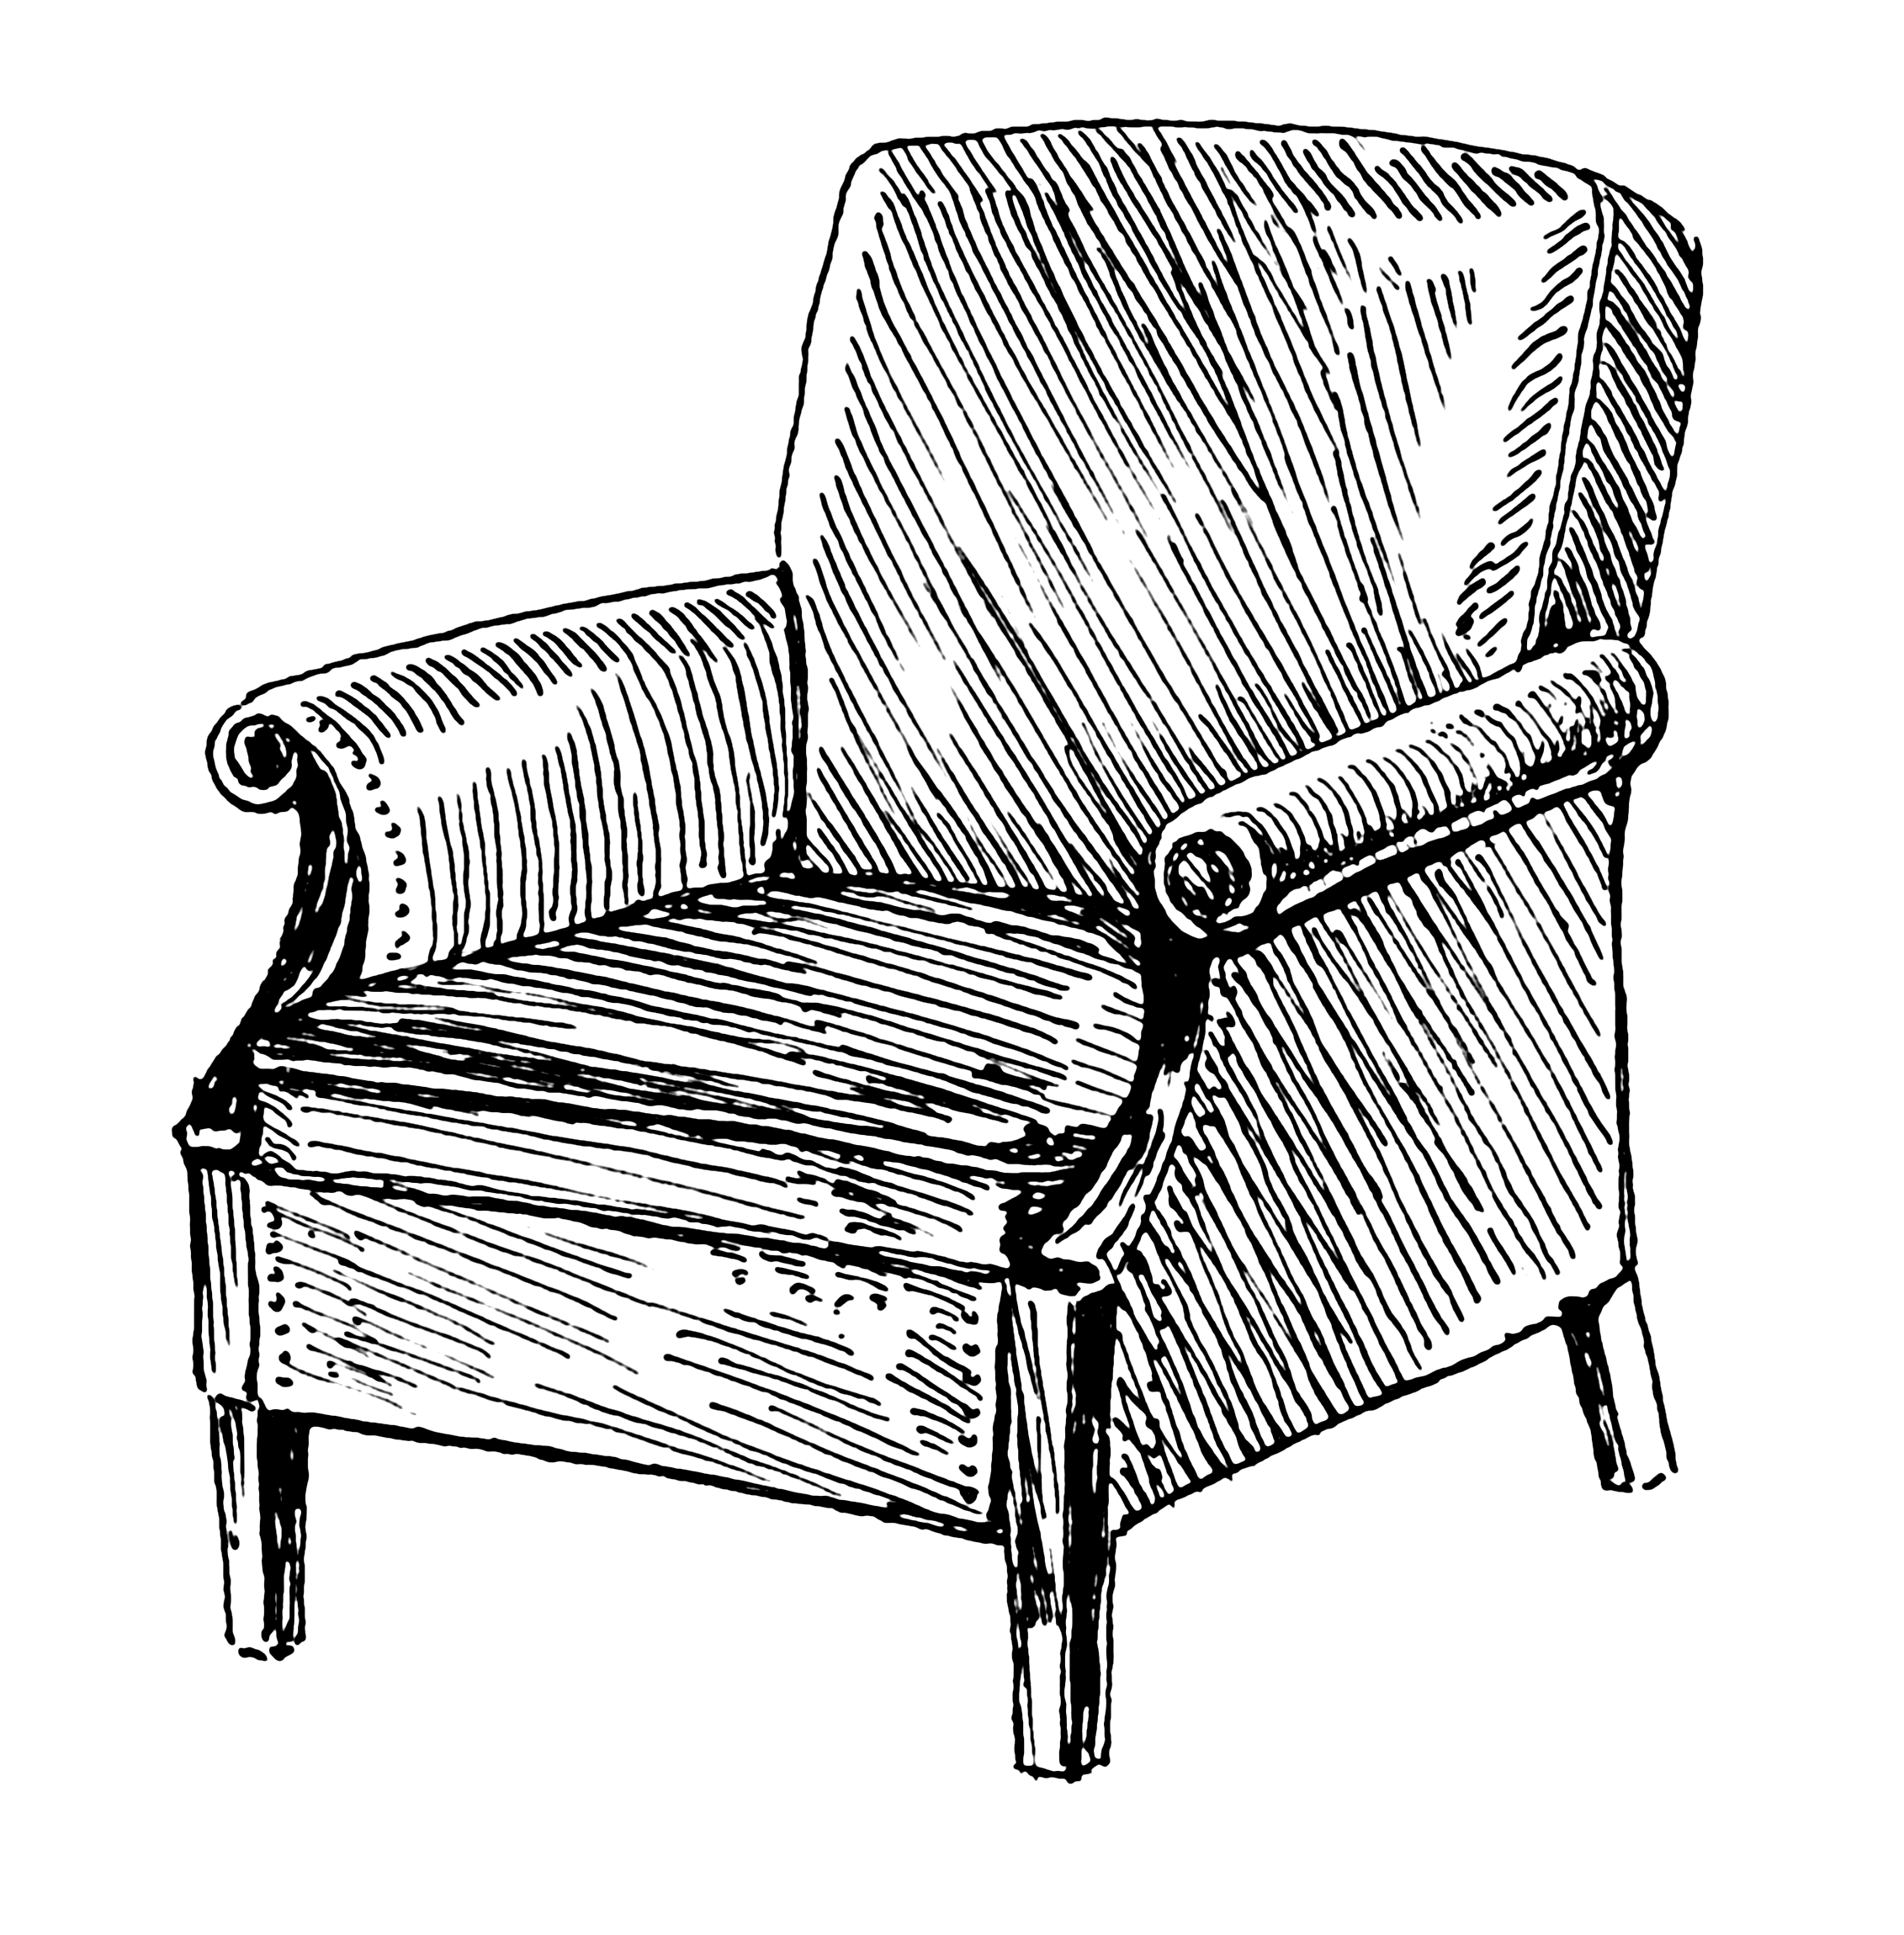 how to draw an arm chair filearmchair 001png the work of god39s children chair draw an arm to how